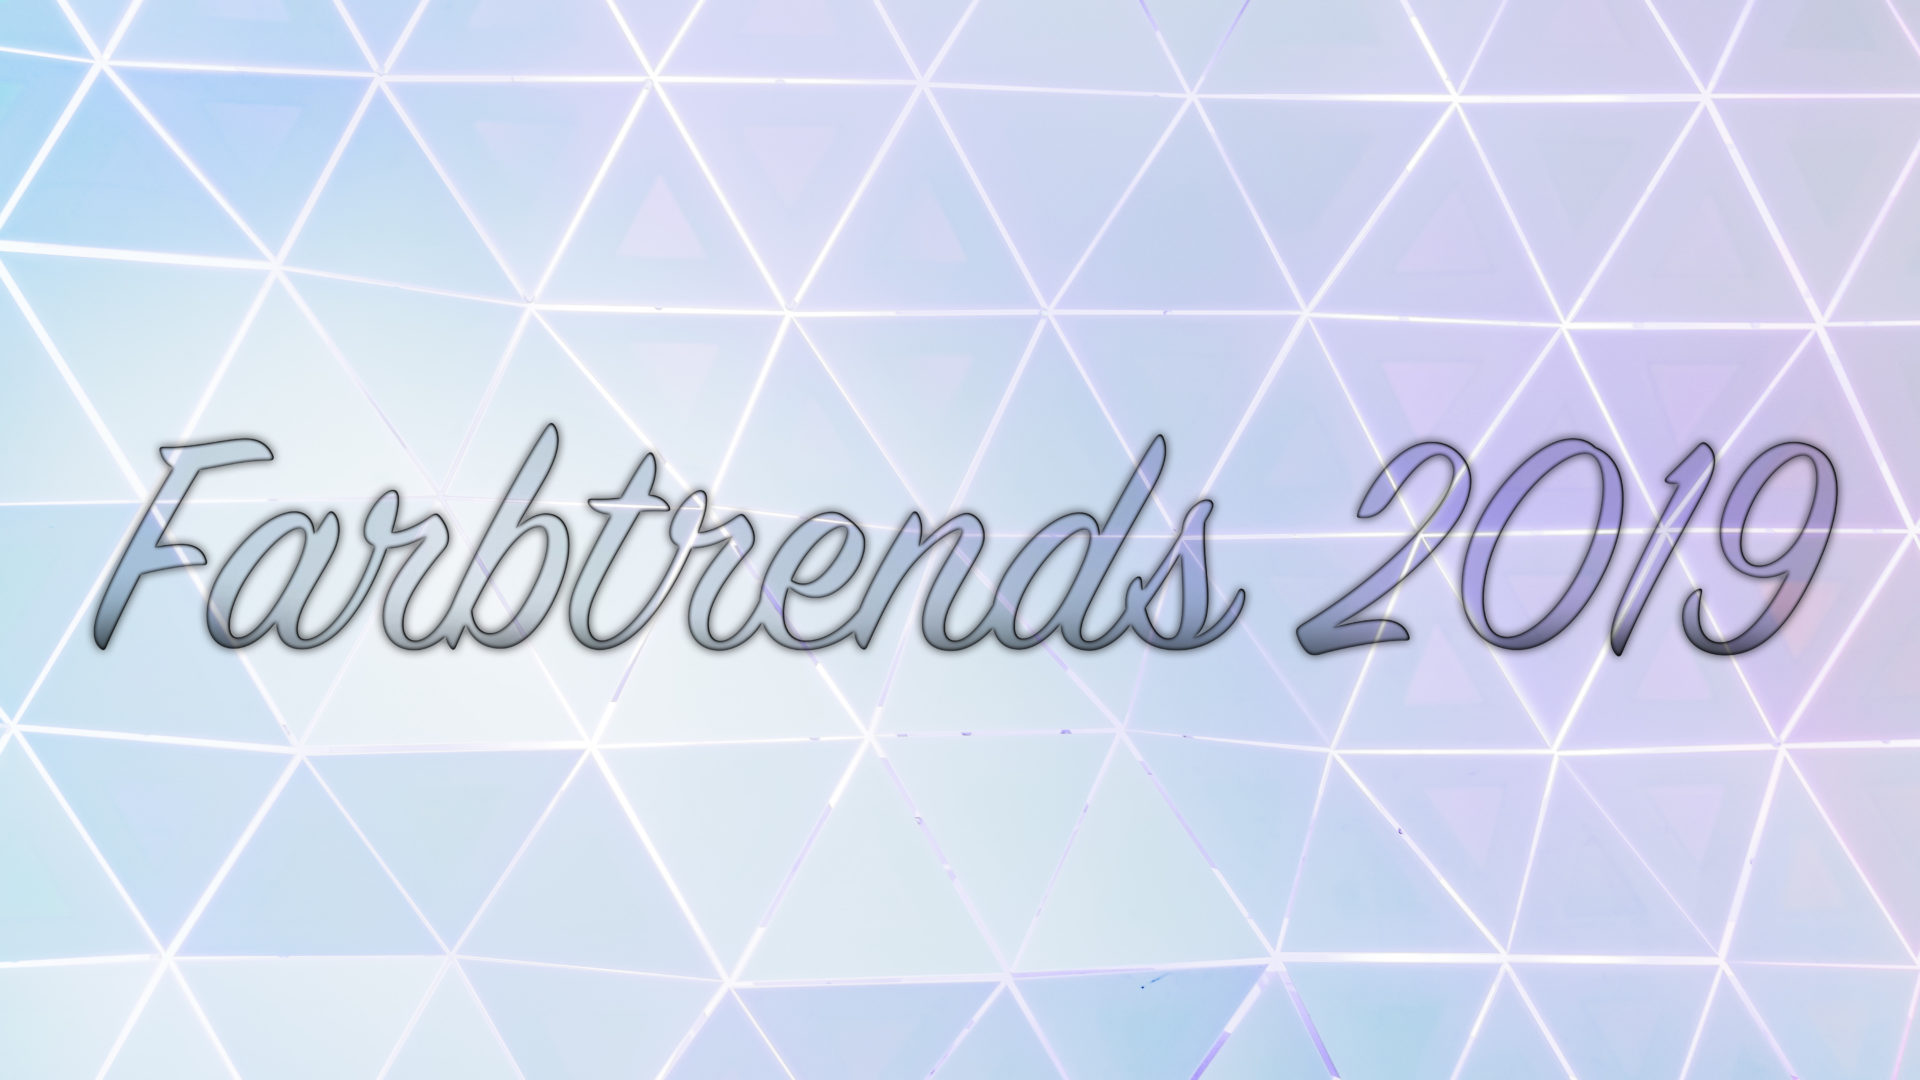 Farbtrends 2019 – Pastelle mit Charme